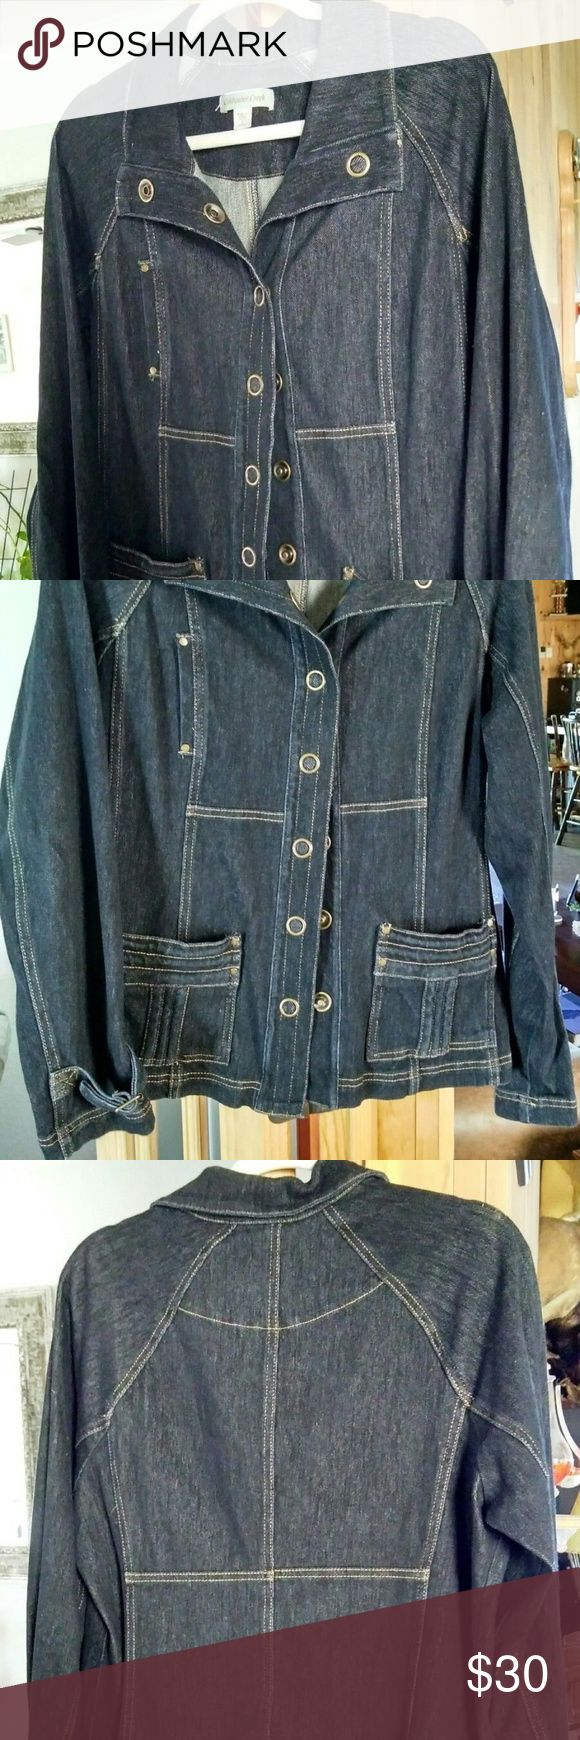 "Denim Jean Jacket Coldwater Creek Cowgirl BOHO Dark blue denim jacket generous cut. Length from collar to hem is 26"".  Excellent condition, has oversize snaps, fits 12/14. Coldwater Creek Jackets & Coats Jean Jackets"